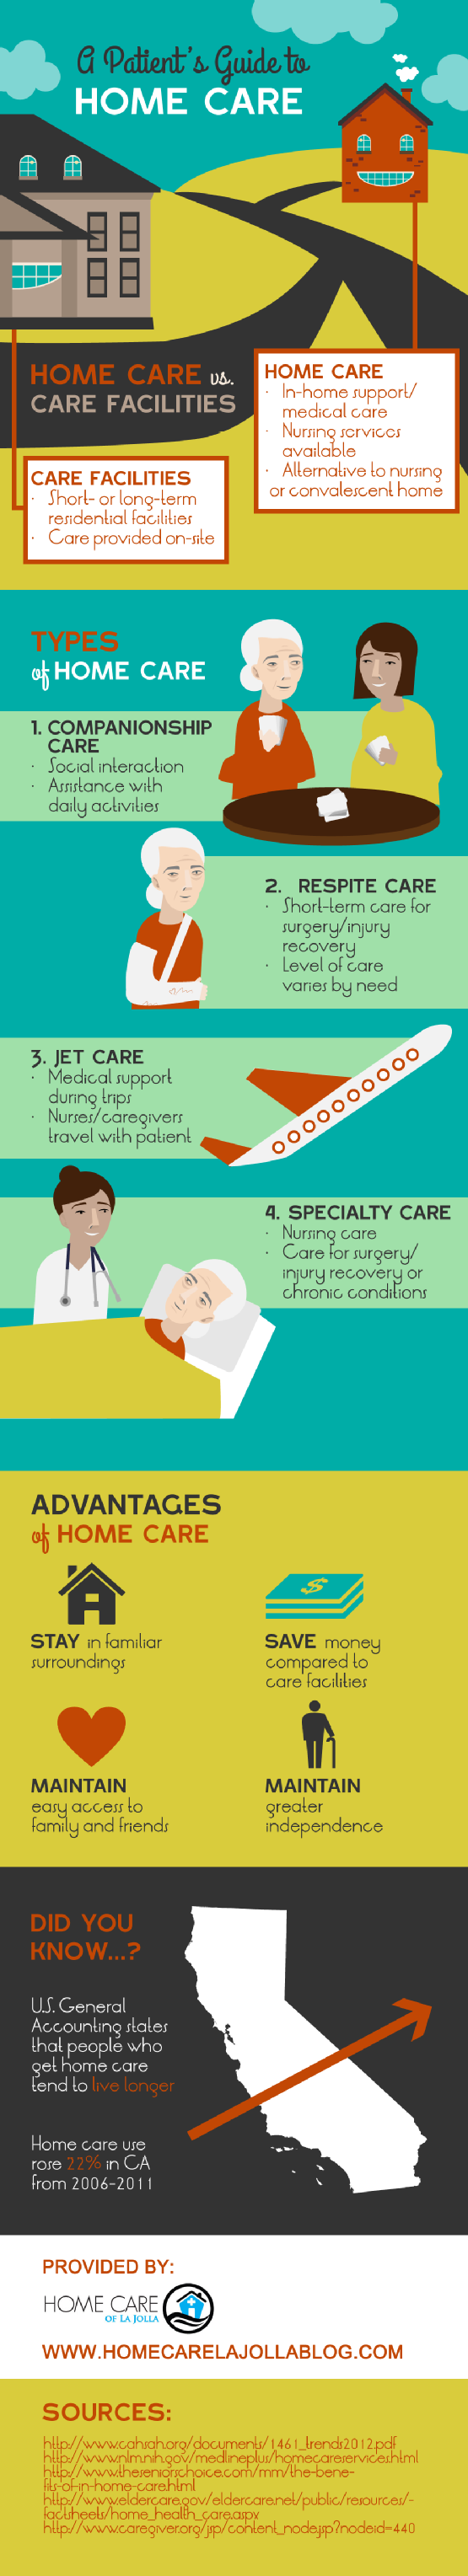 Infographic: A Patient's Guide to Home Care